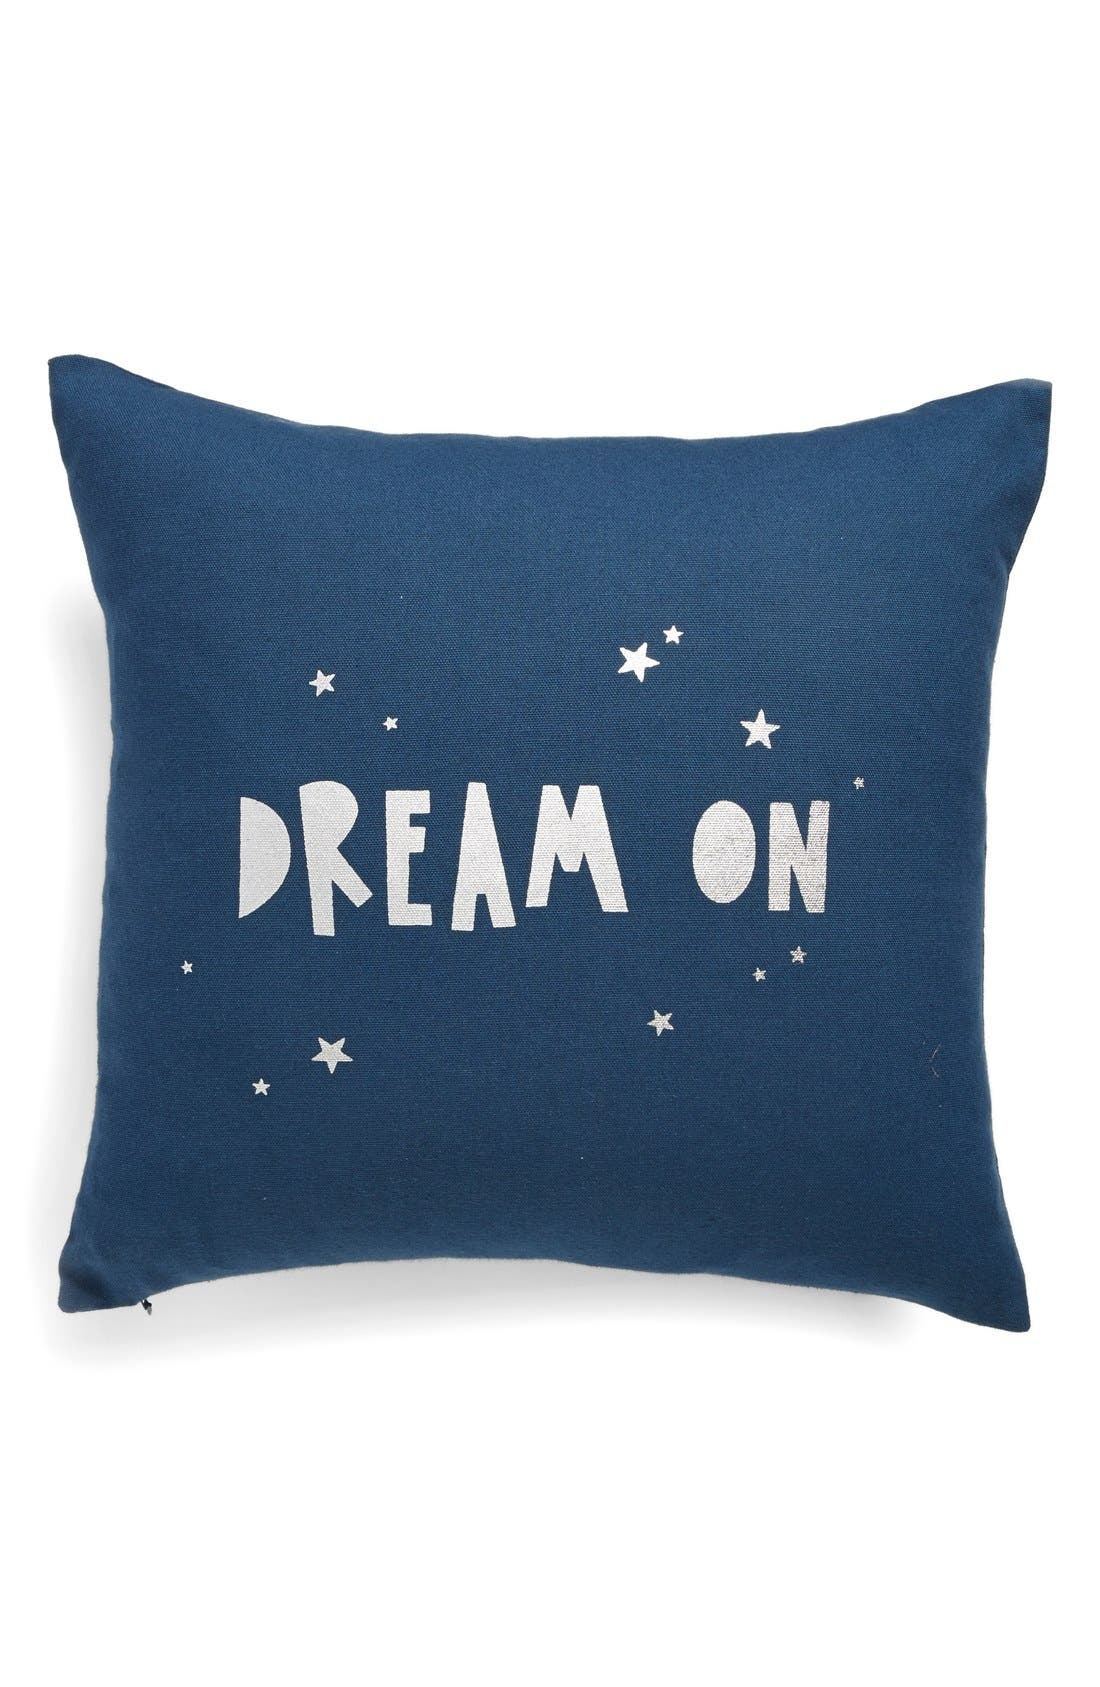 Main Image - Nordstrom at Home 'Dream On' Square Accent Pillow